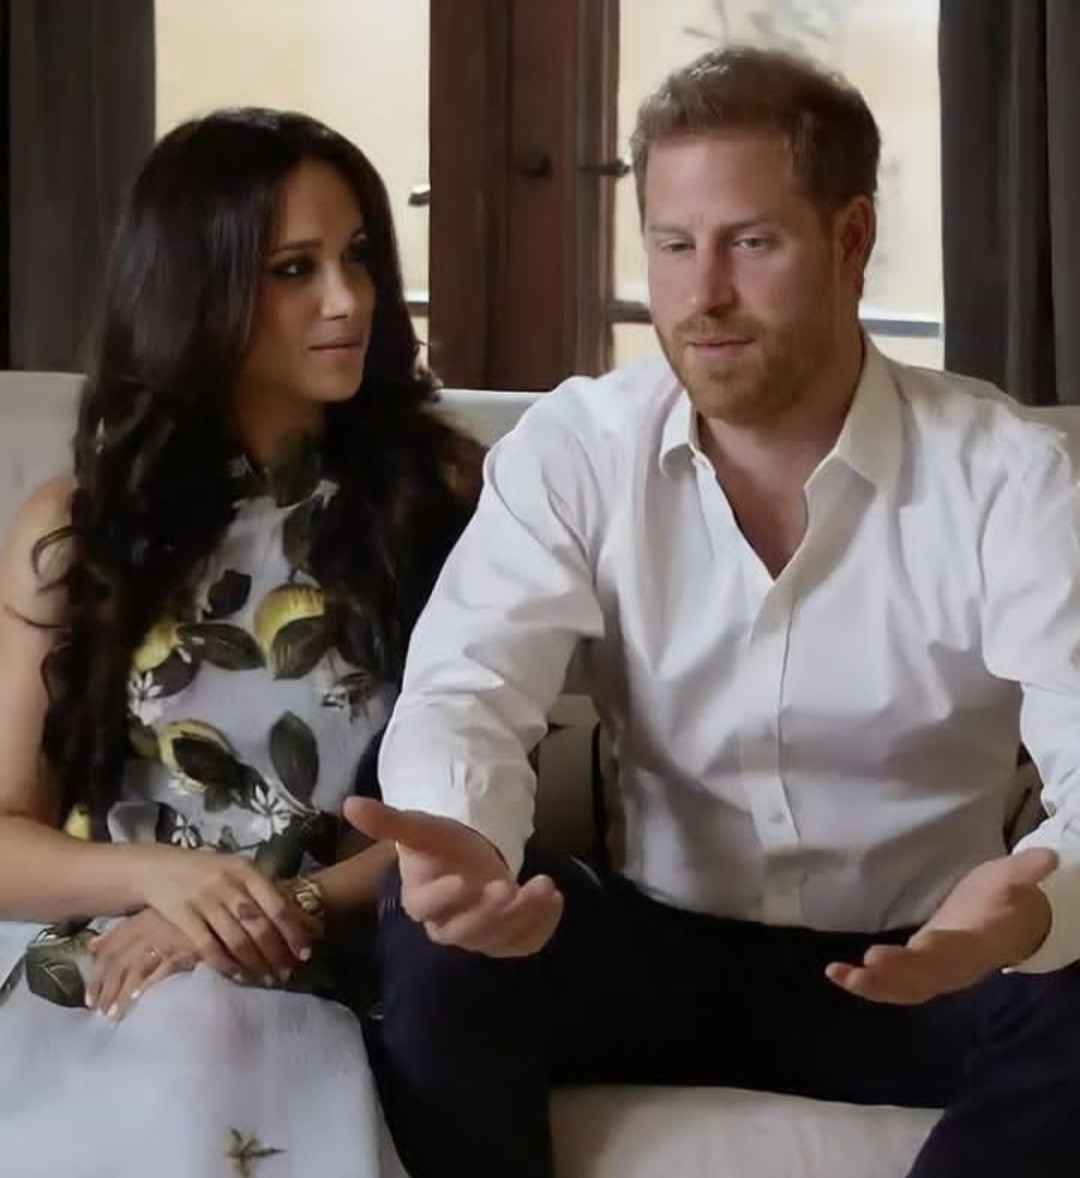 Meghan Markle and Prince Harry make first appearance since announcing pregnancy (video)